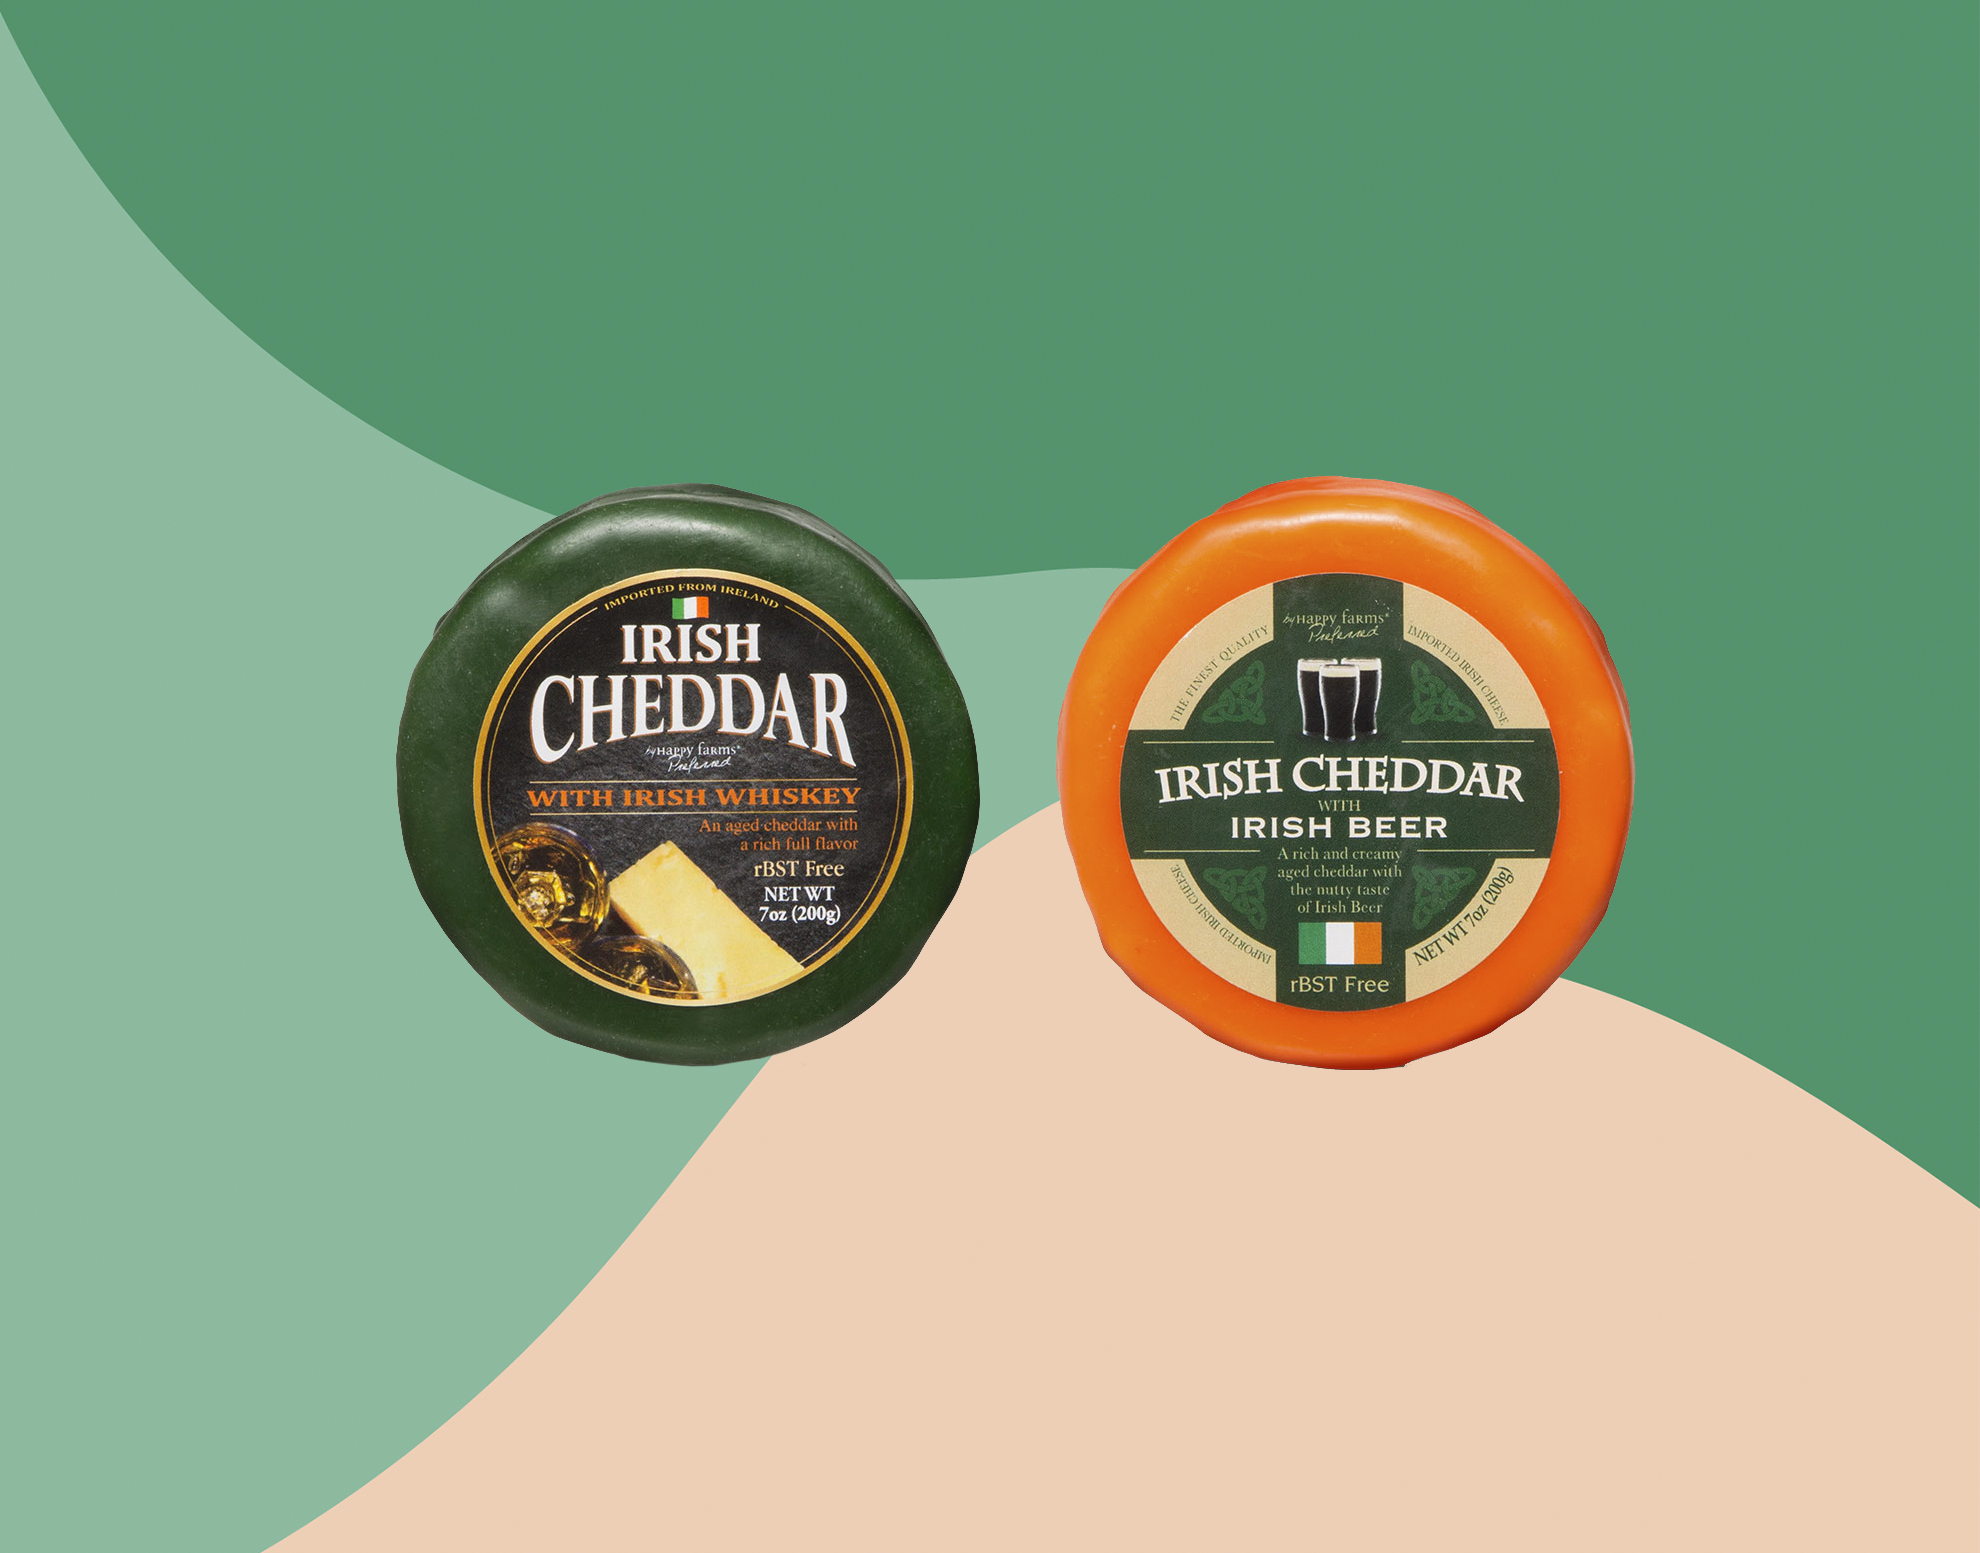 irish-cheeses-saint-patricks-day.